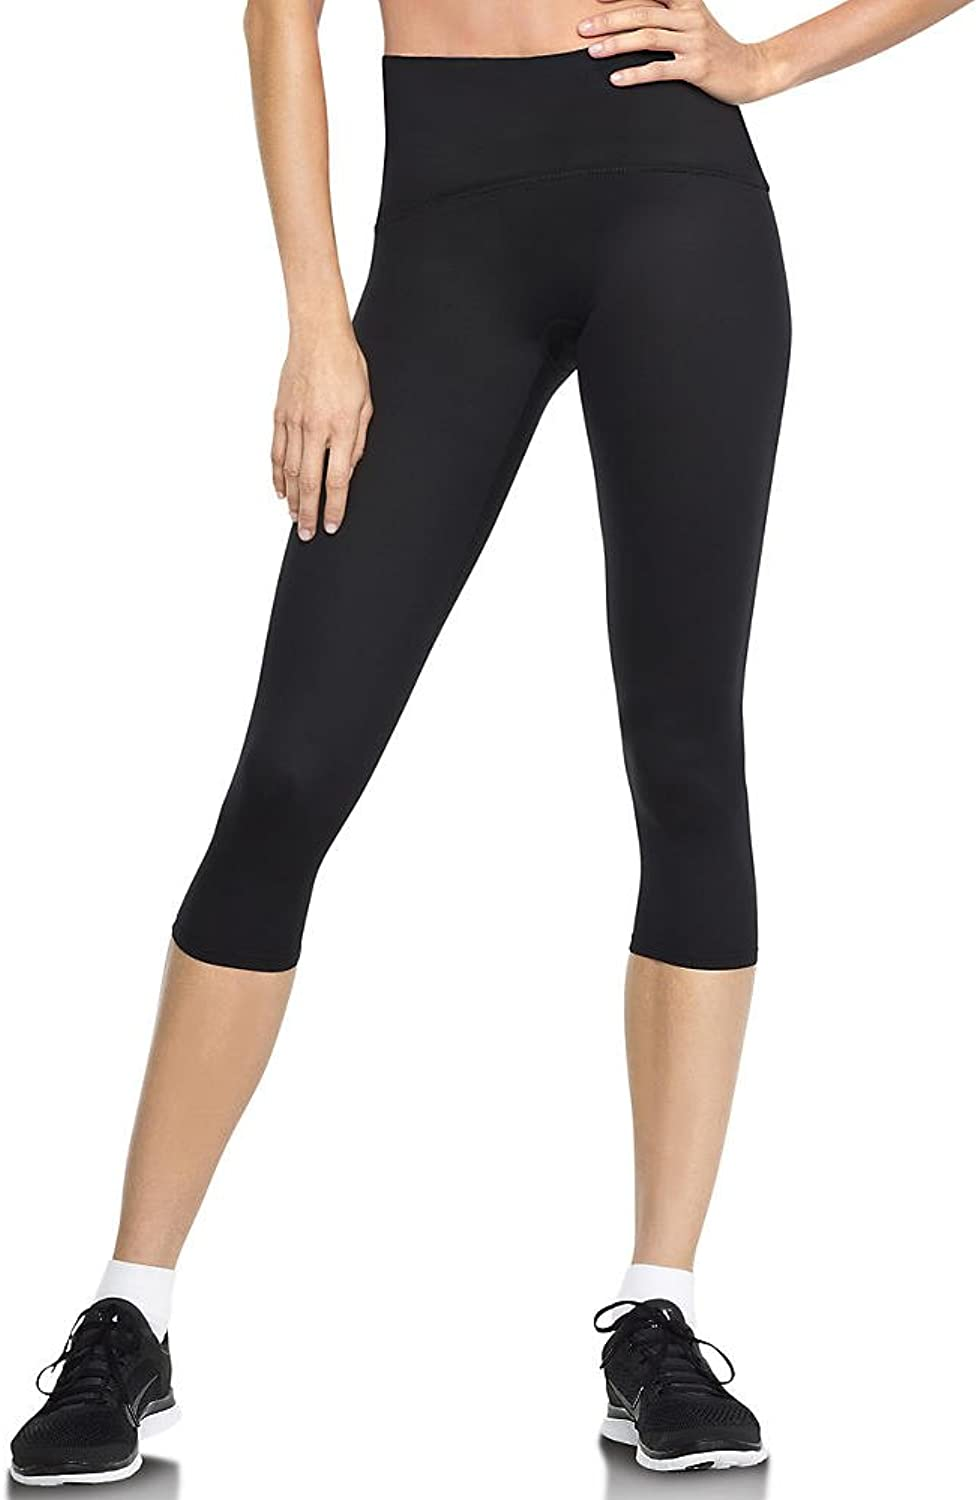 Spanx Women's Active Compression Cropped Leggings, Black, M